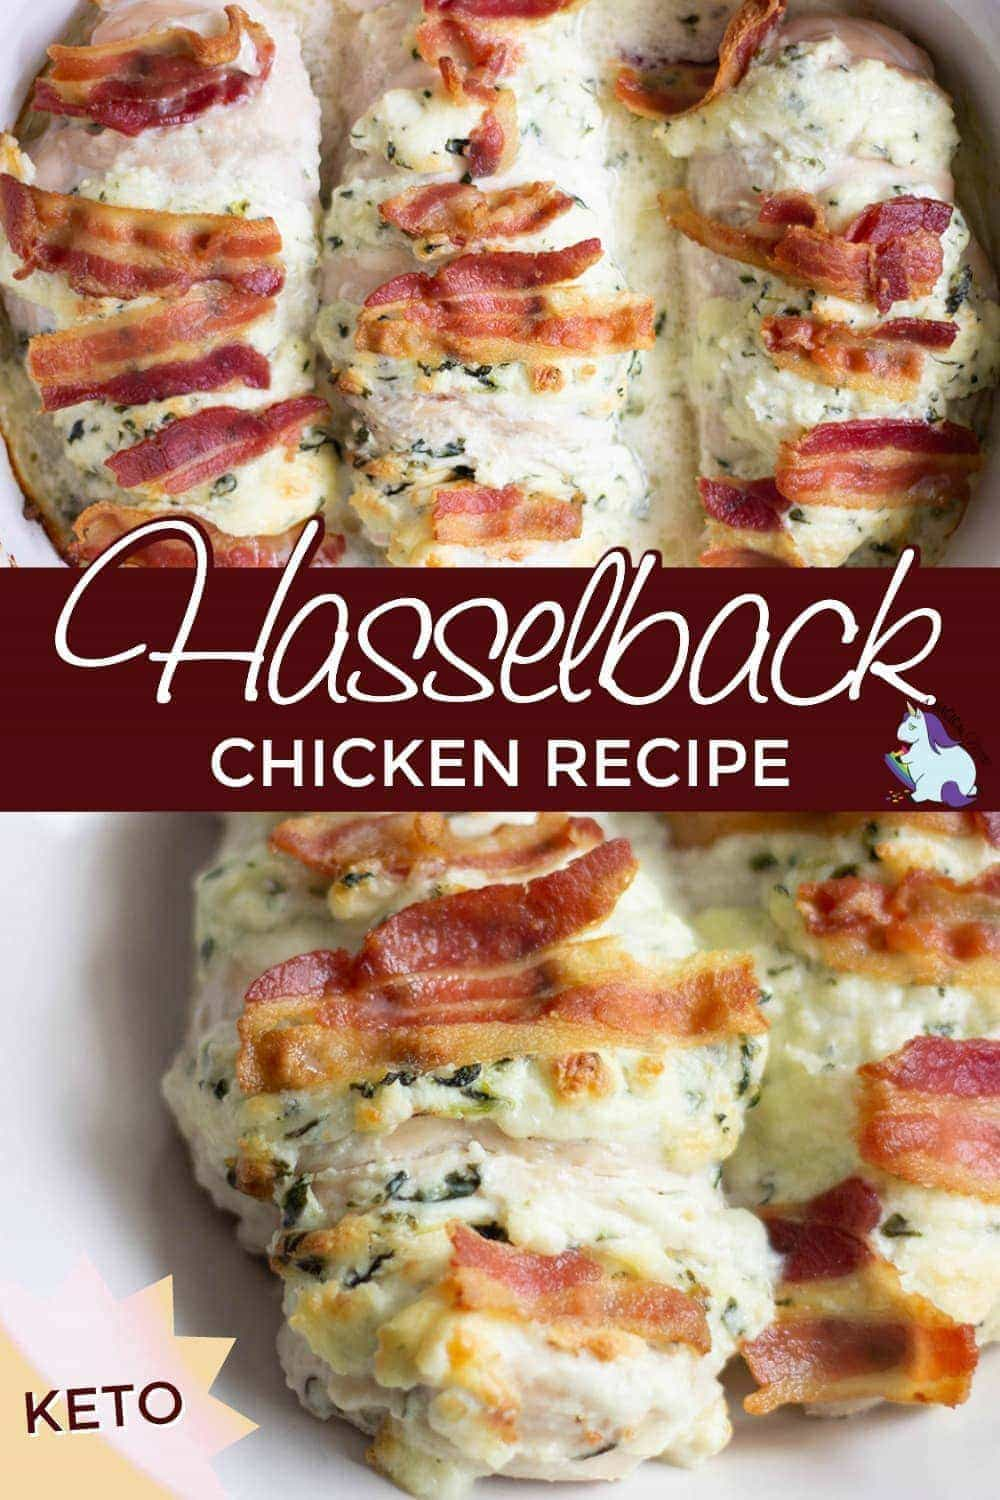 Hasselback chicken stuffed with spinach, bacon, and cream cheese.